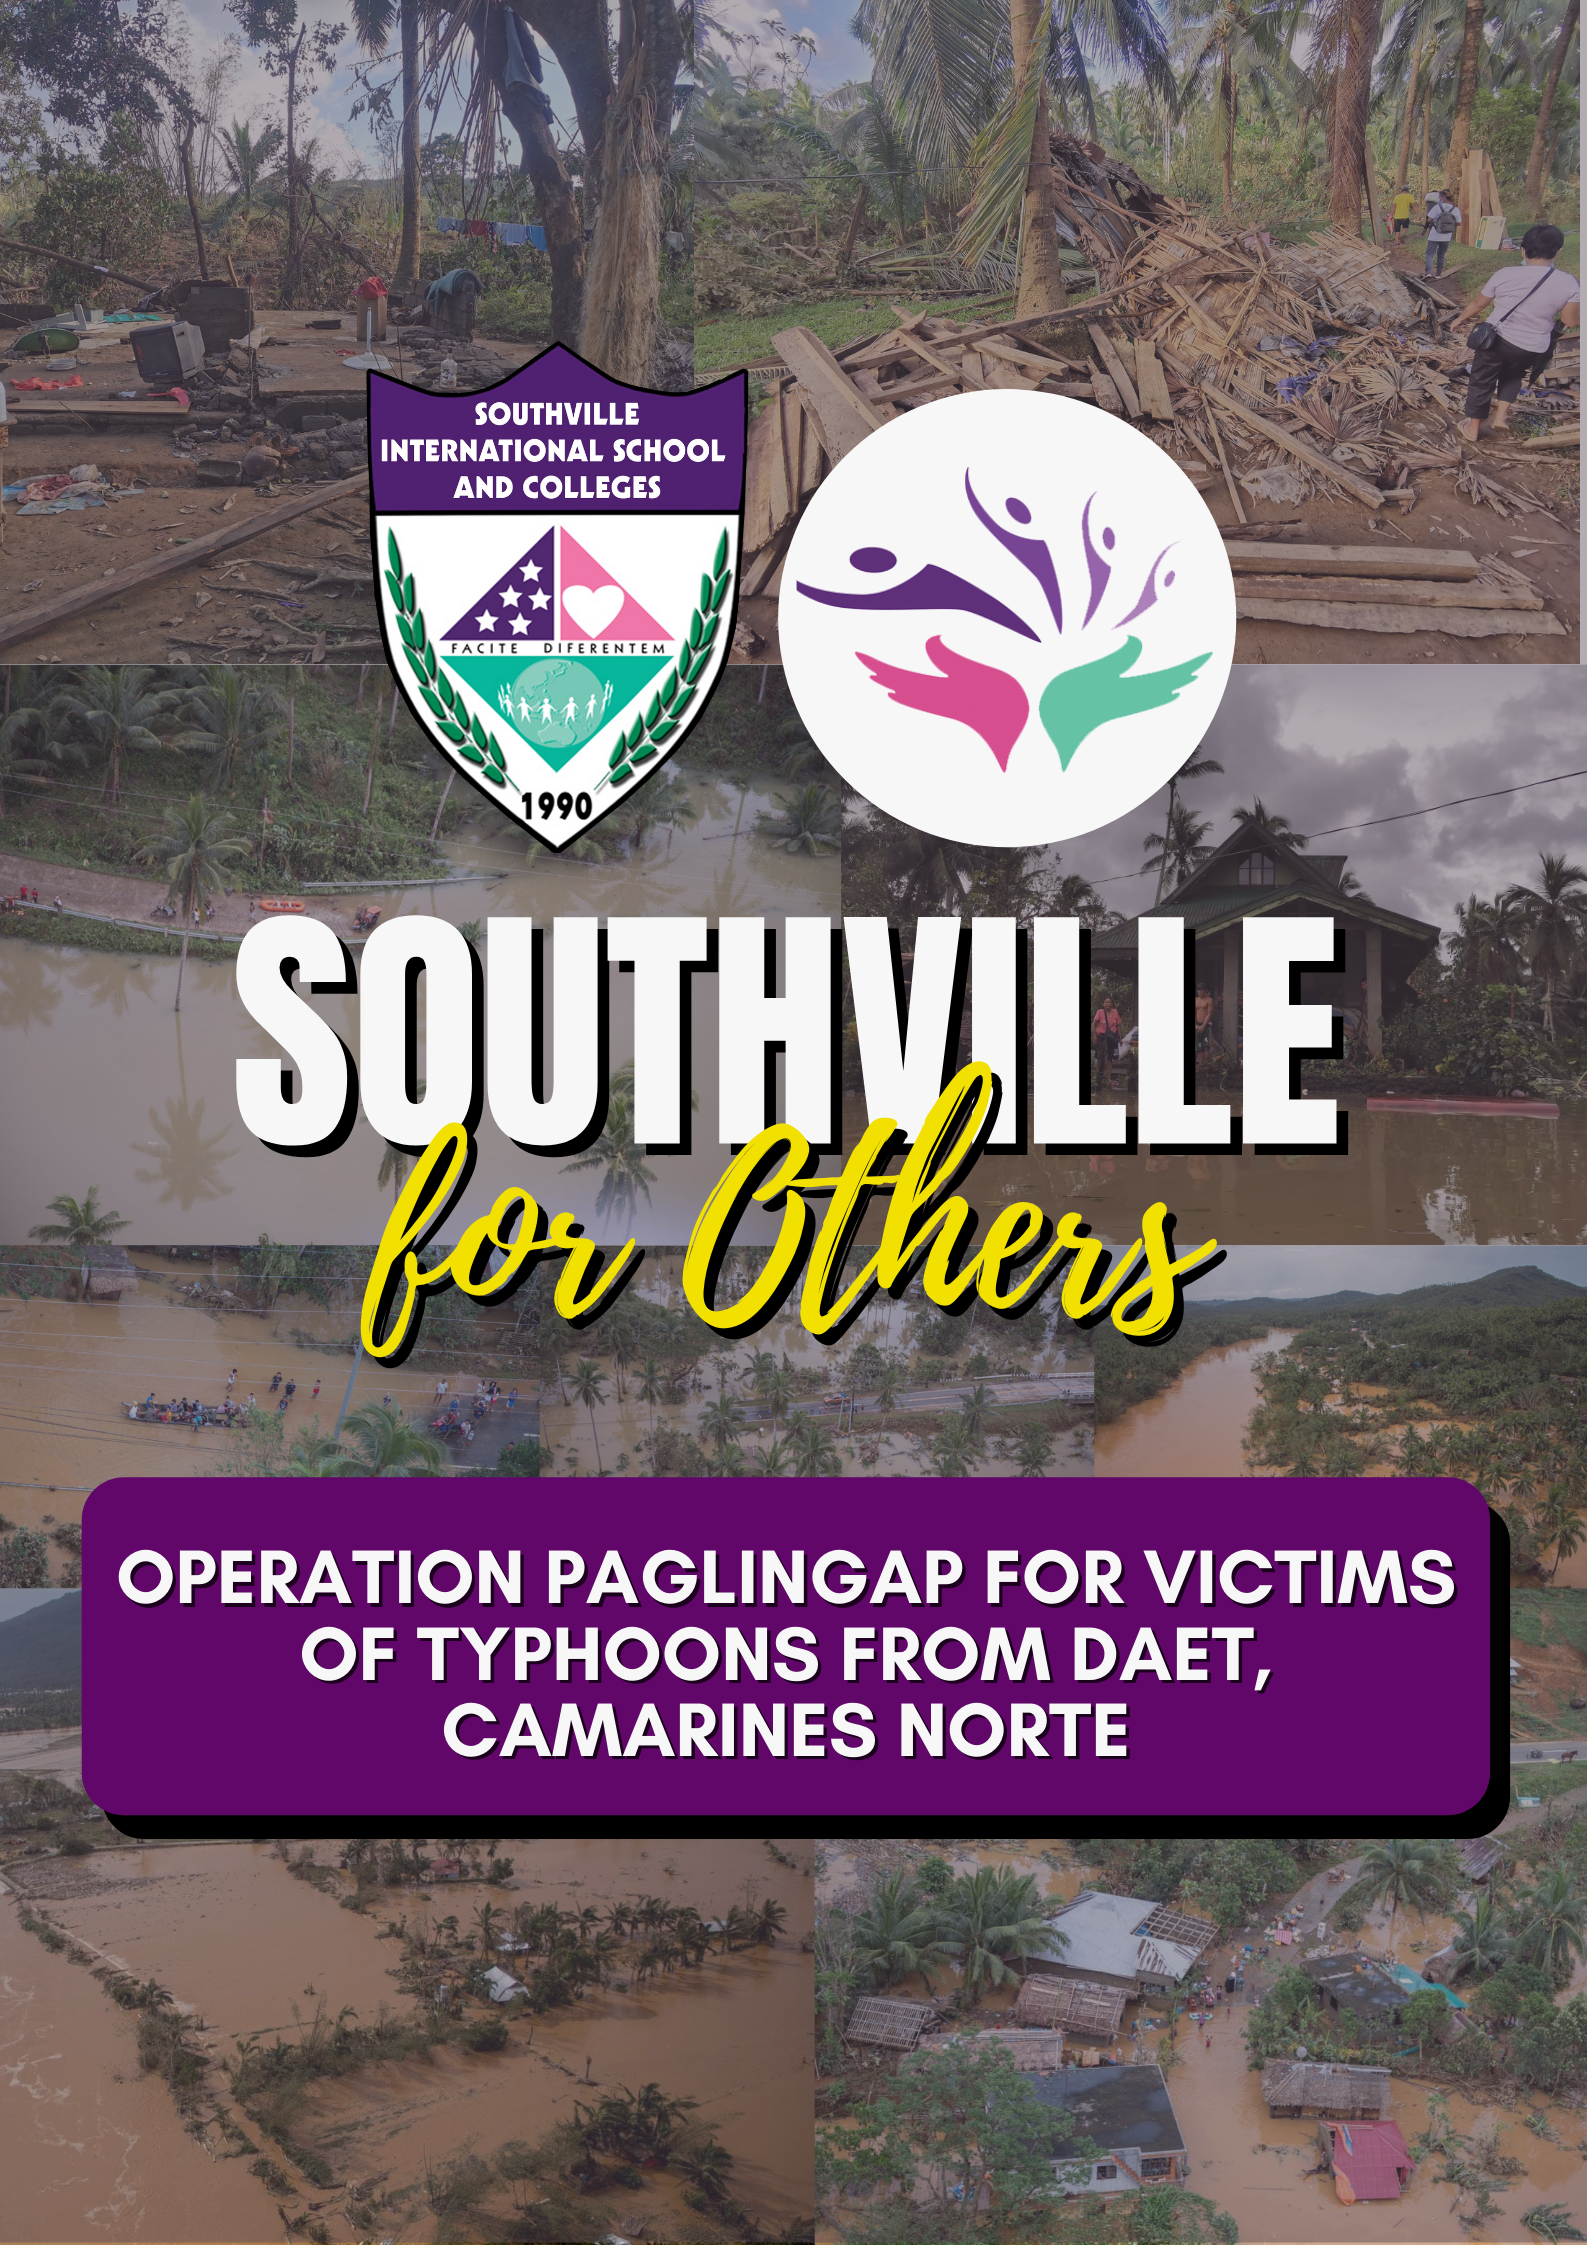 Southville For Others (SFO): A Pledge for Typhoon Victims